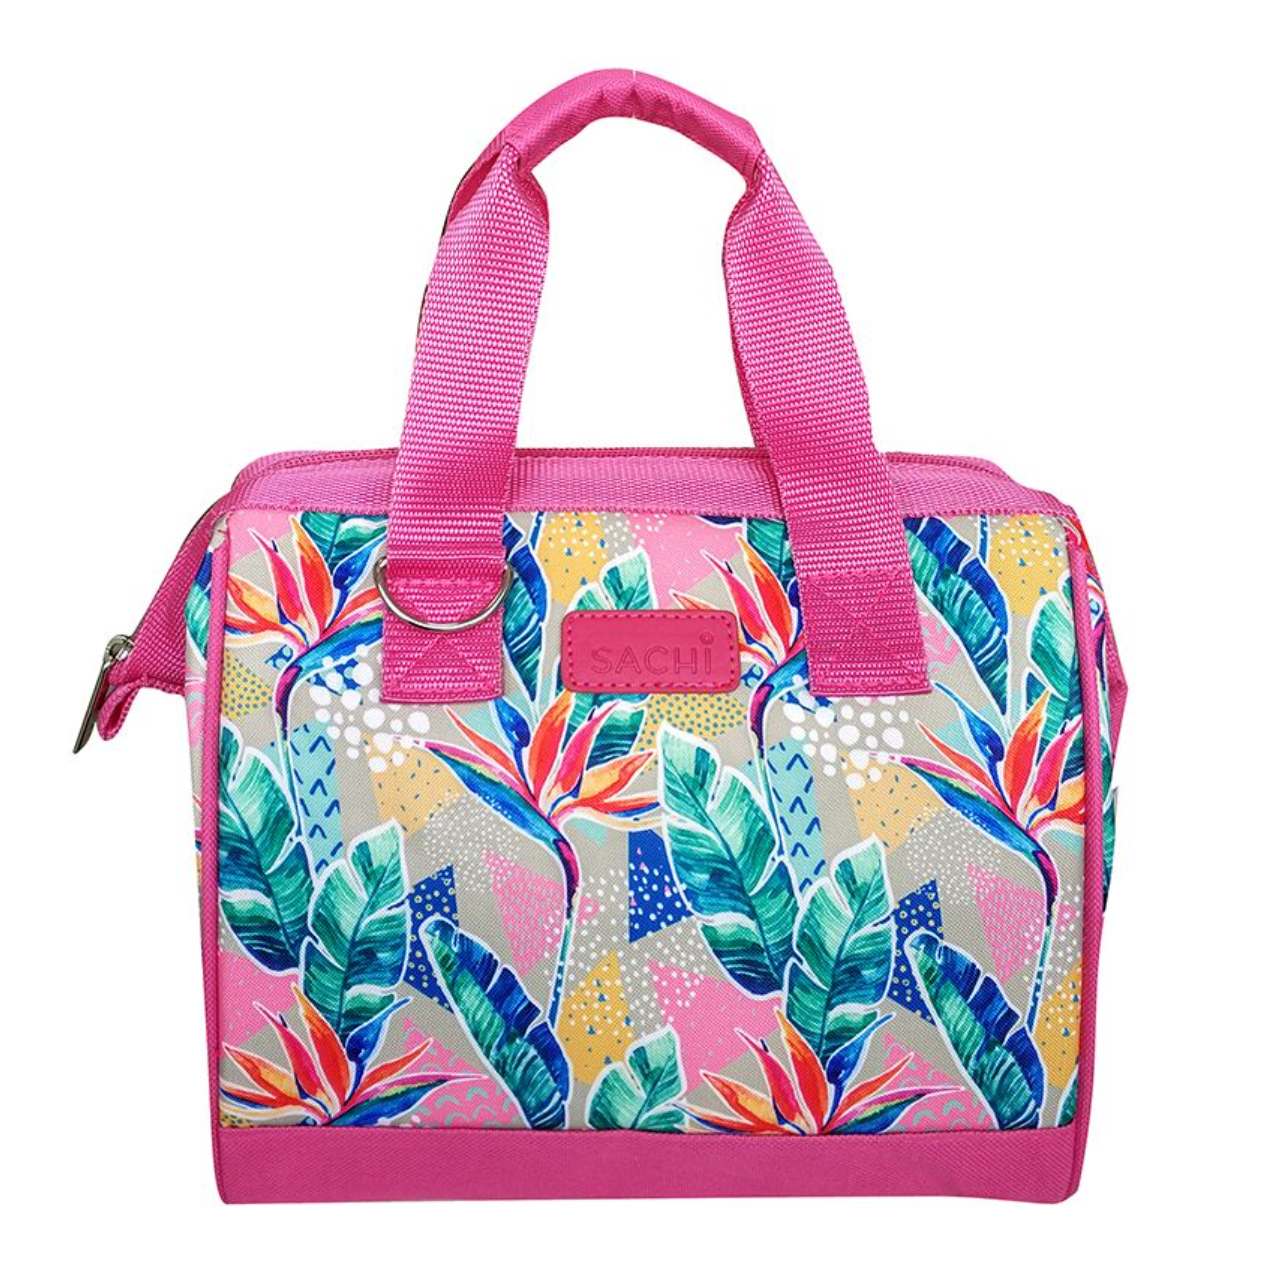 Sachi Insulated Lunch Bag Botanical